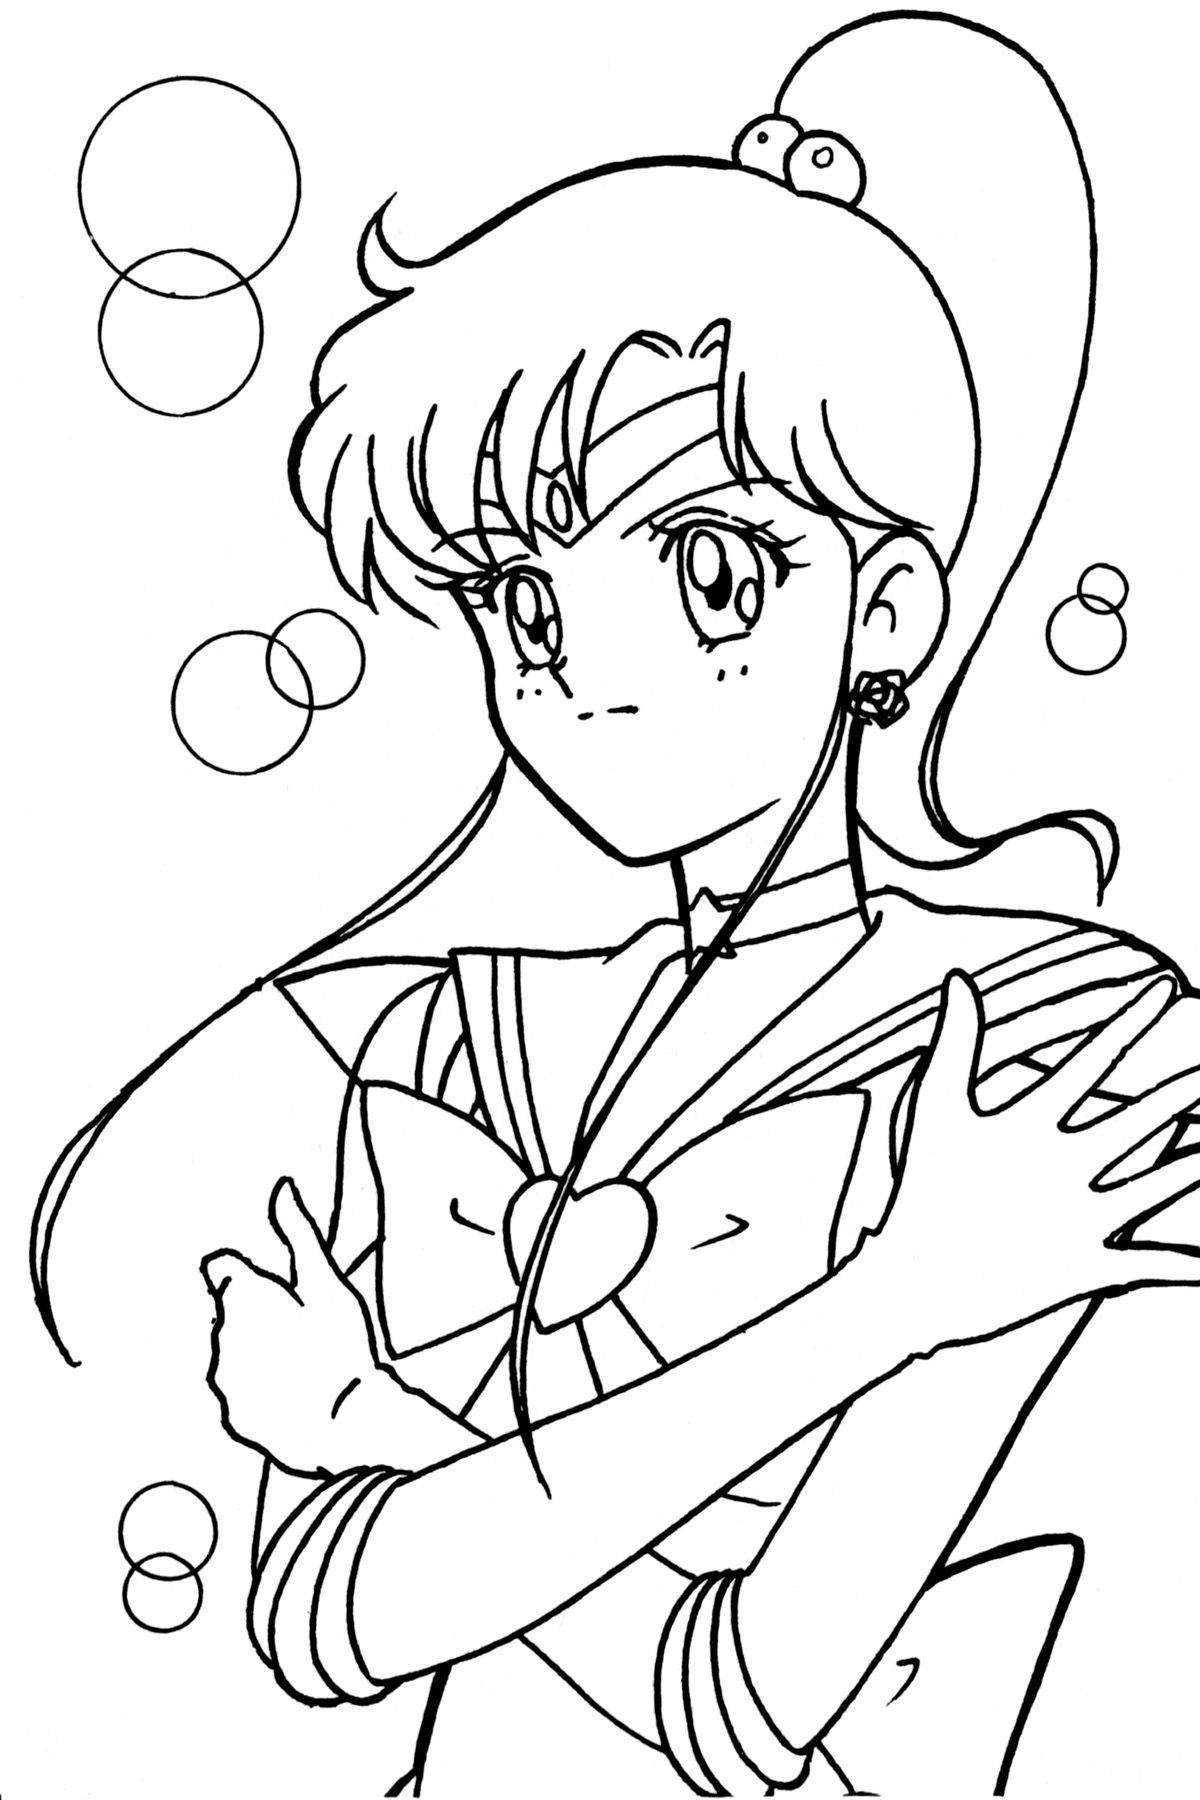 Sailor Jupiter Smile Coloring Pages For Kids Gze Printable Sailor Moon Coloring Pages For Kid Sailor Moon Coloring Pages Moon Coloring Pages Sailor Moon Art